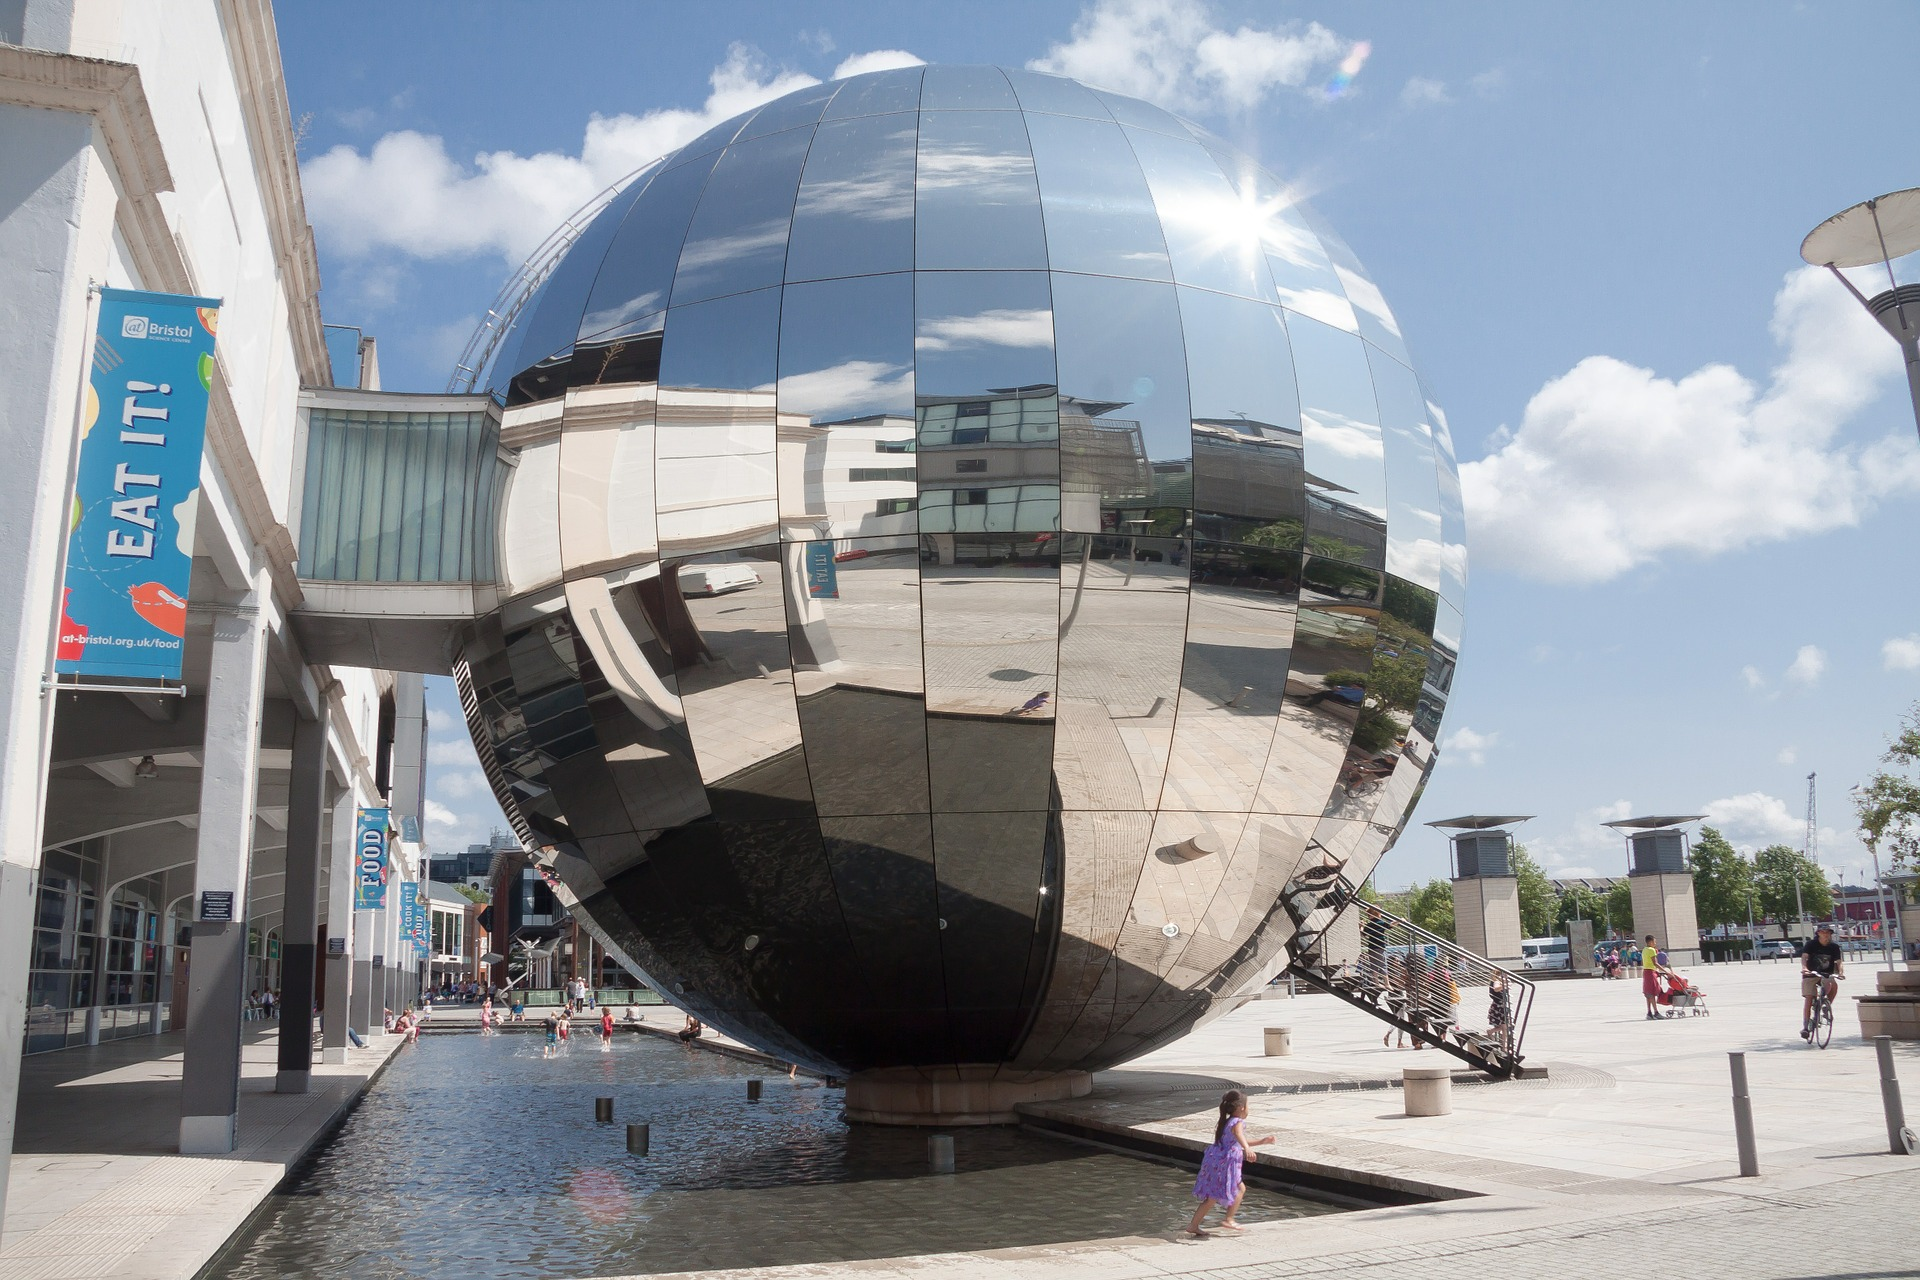 The 3 D planetarium in Millenium Square